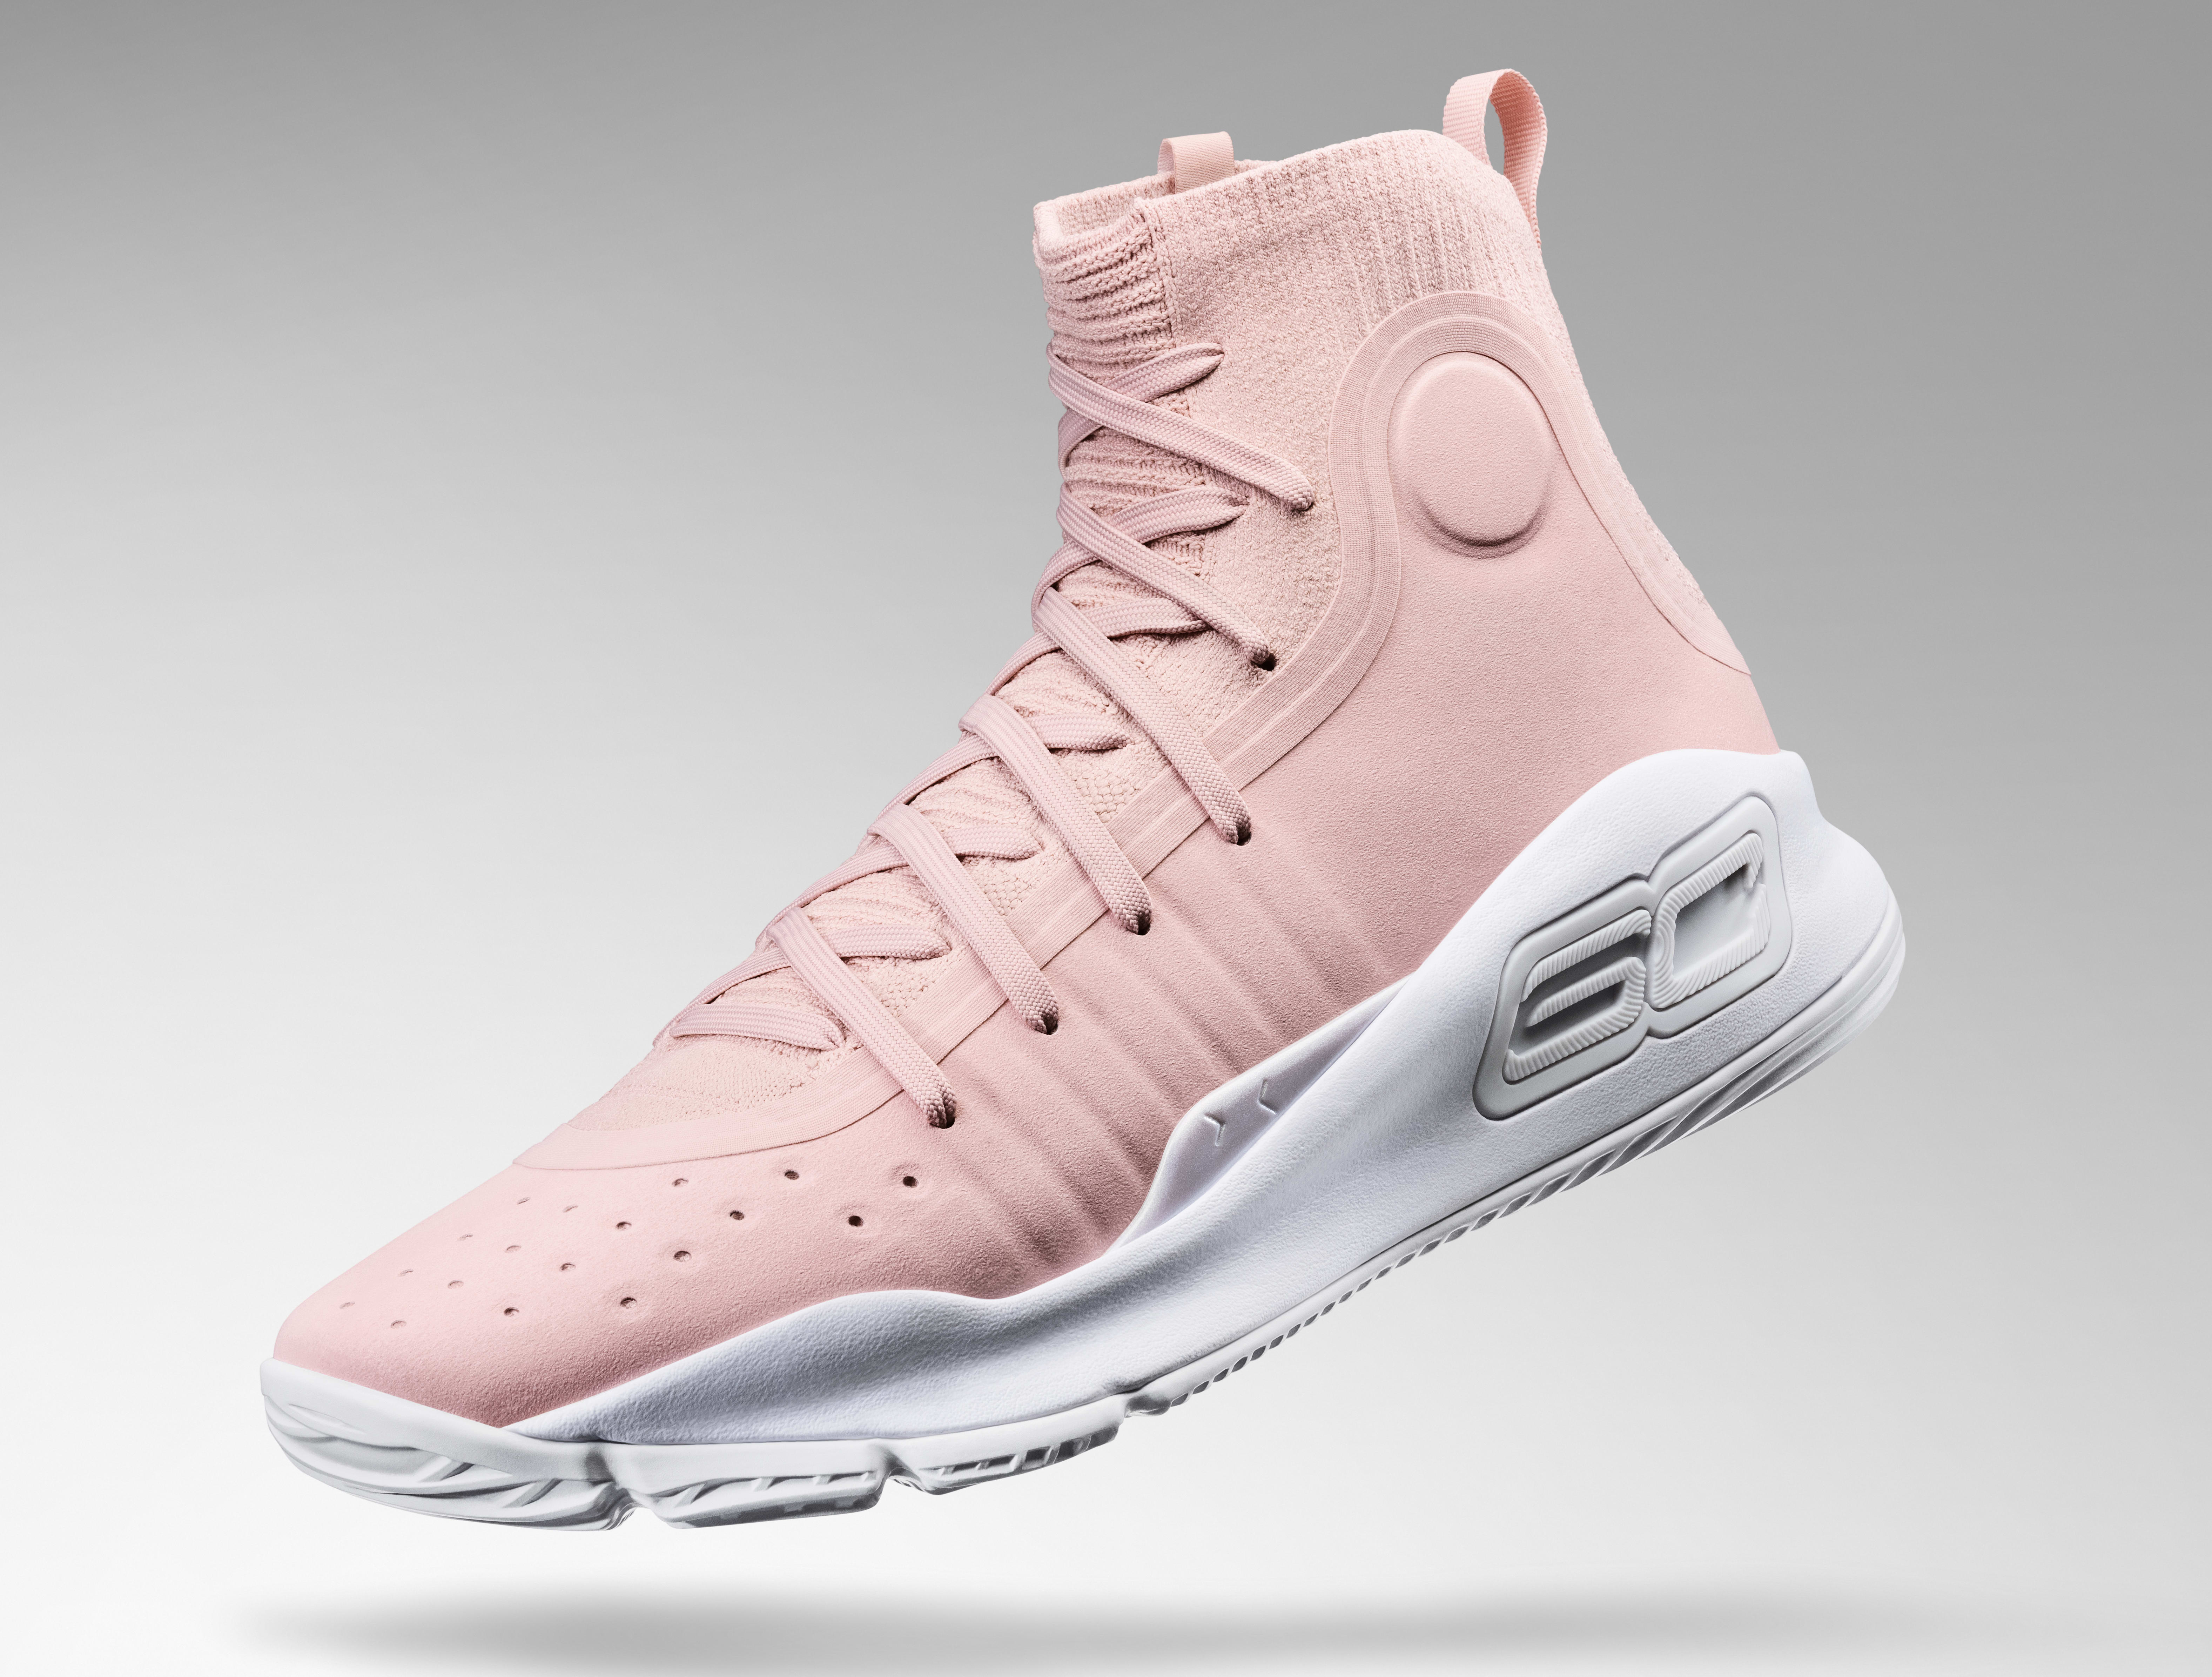 on sale e29ef bcbbd Under Armour Curry 4 'Flushed Pink' Release Date | Sole ...